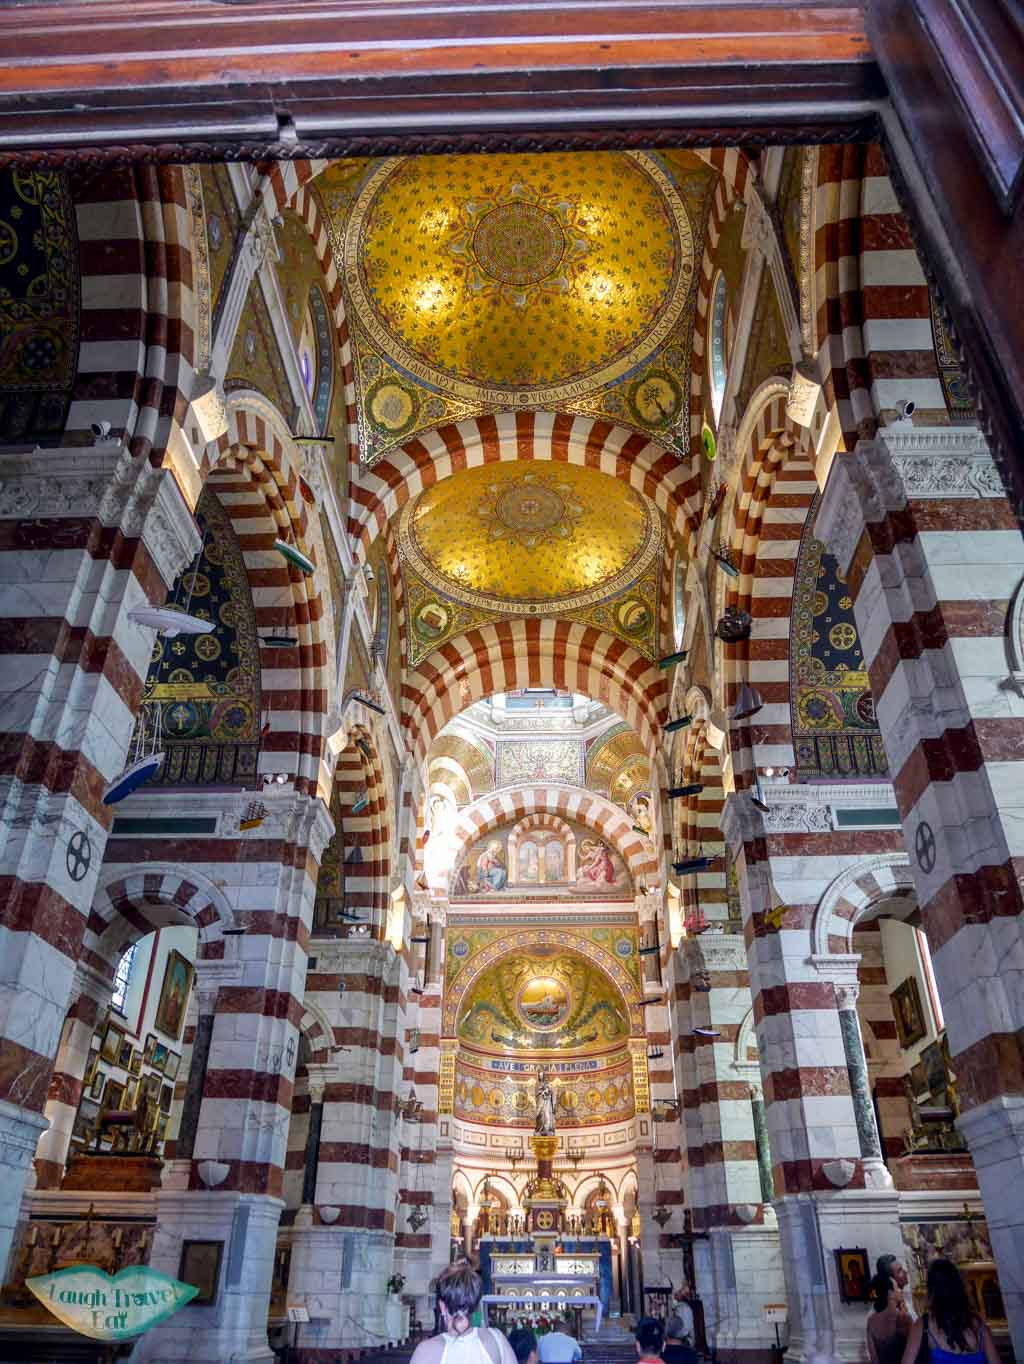 Basilique Notre-Dame de la garde interior marseille france | Laugh Travel Eat